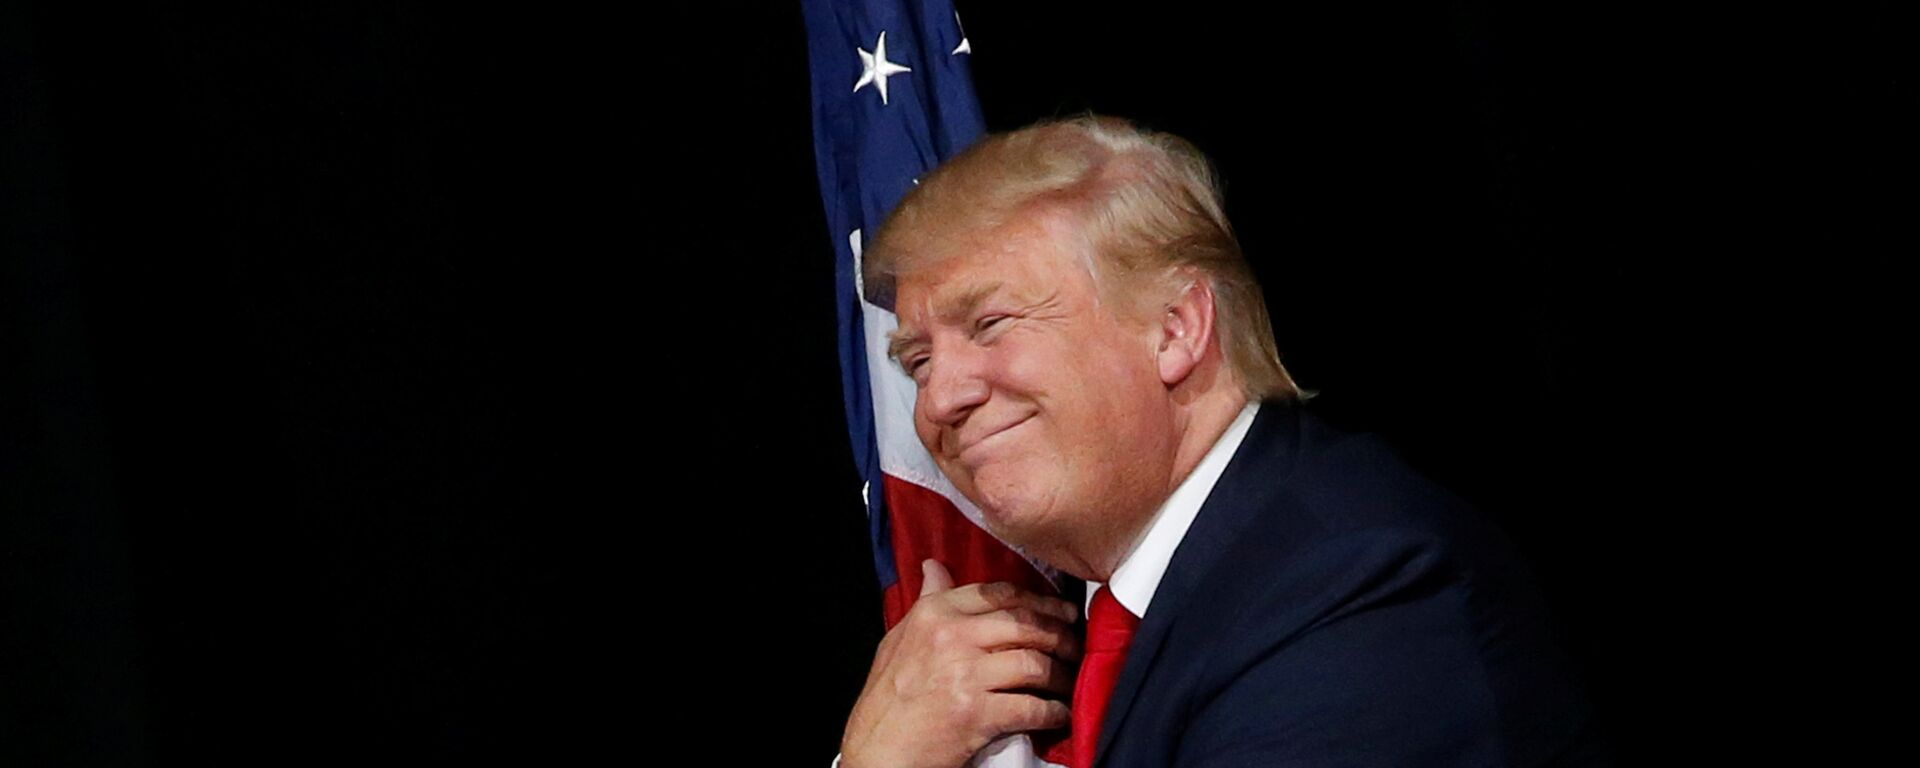 Donald Trump hugs a U.S. flag as he comes onstage to rally with supporters in Tampa, Florida, U.S. October 24, 2016 - Sputnik International, 1920, 12.09.2021